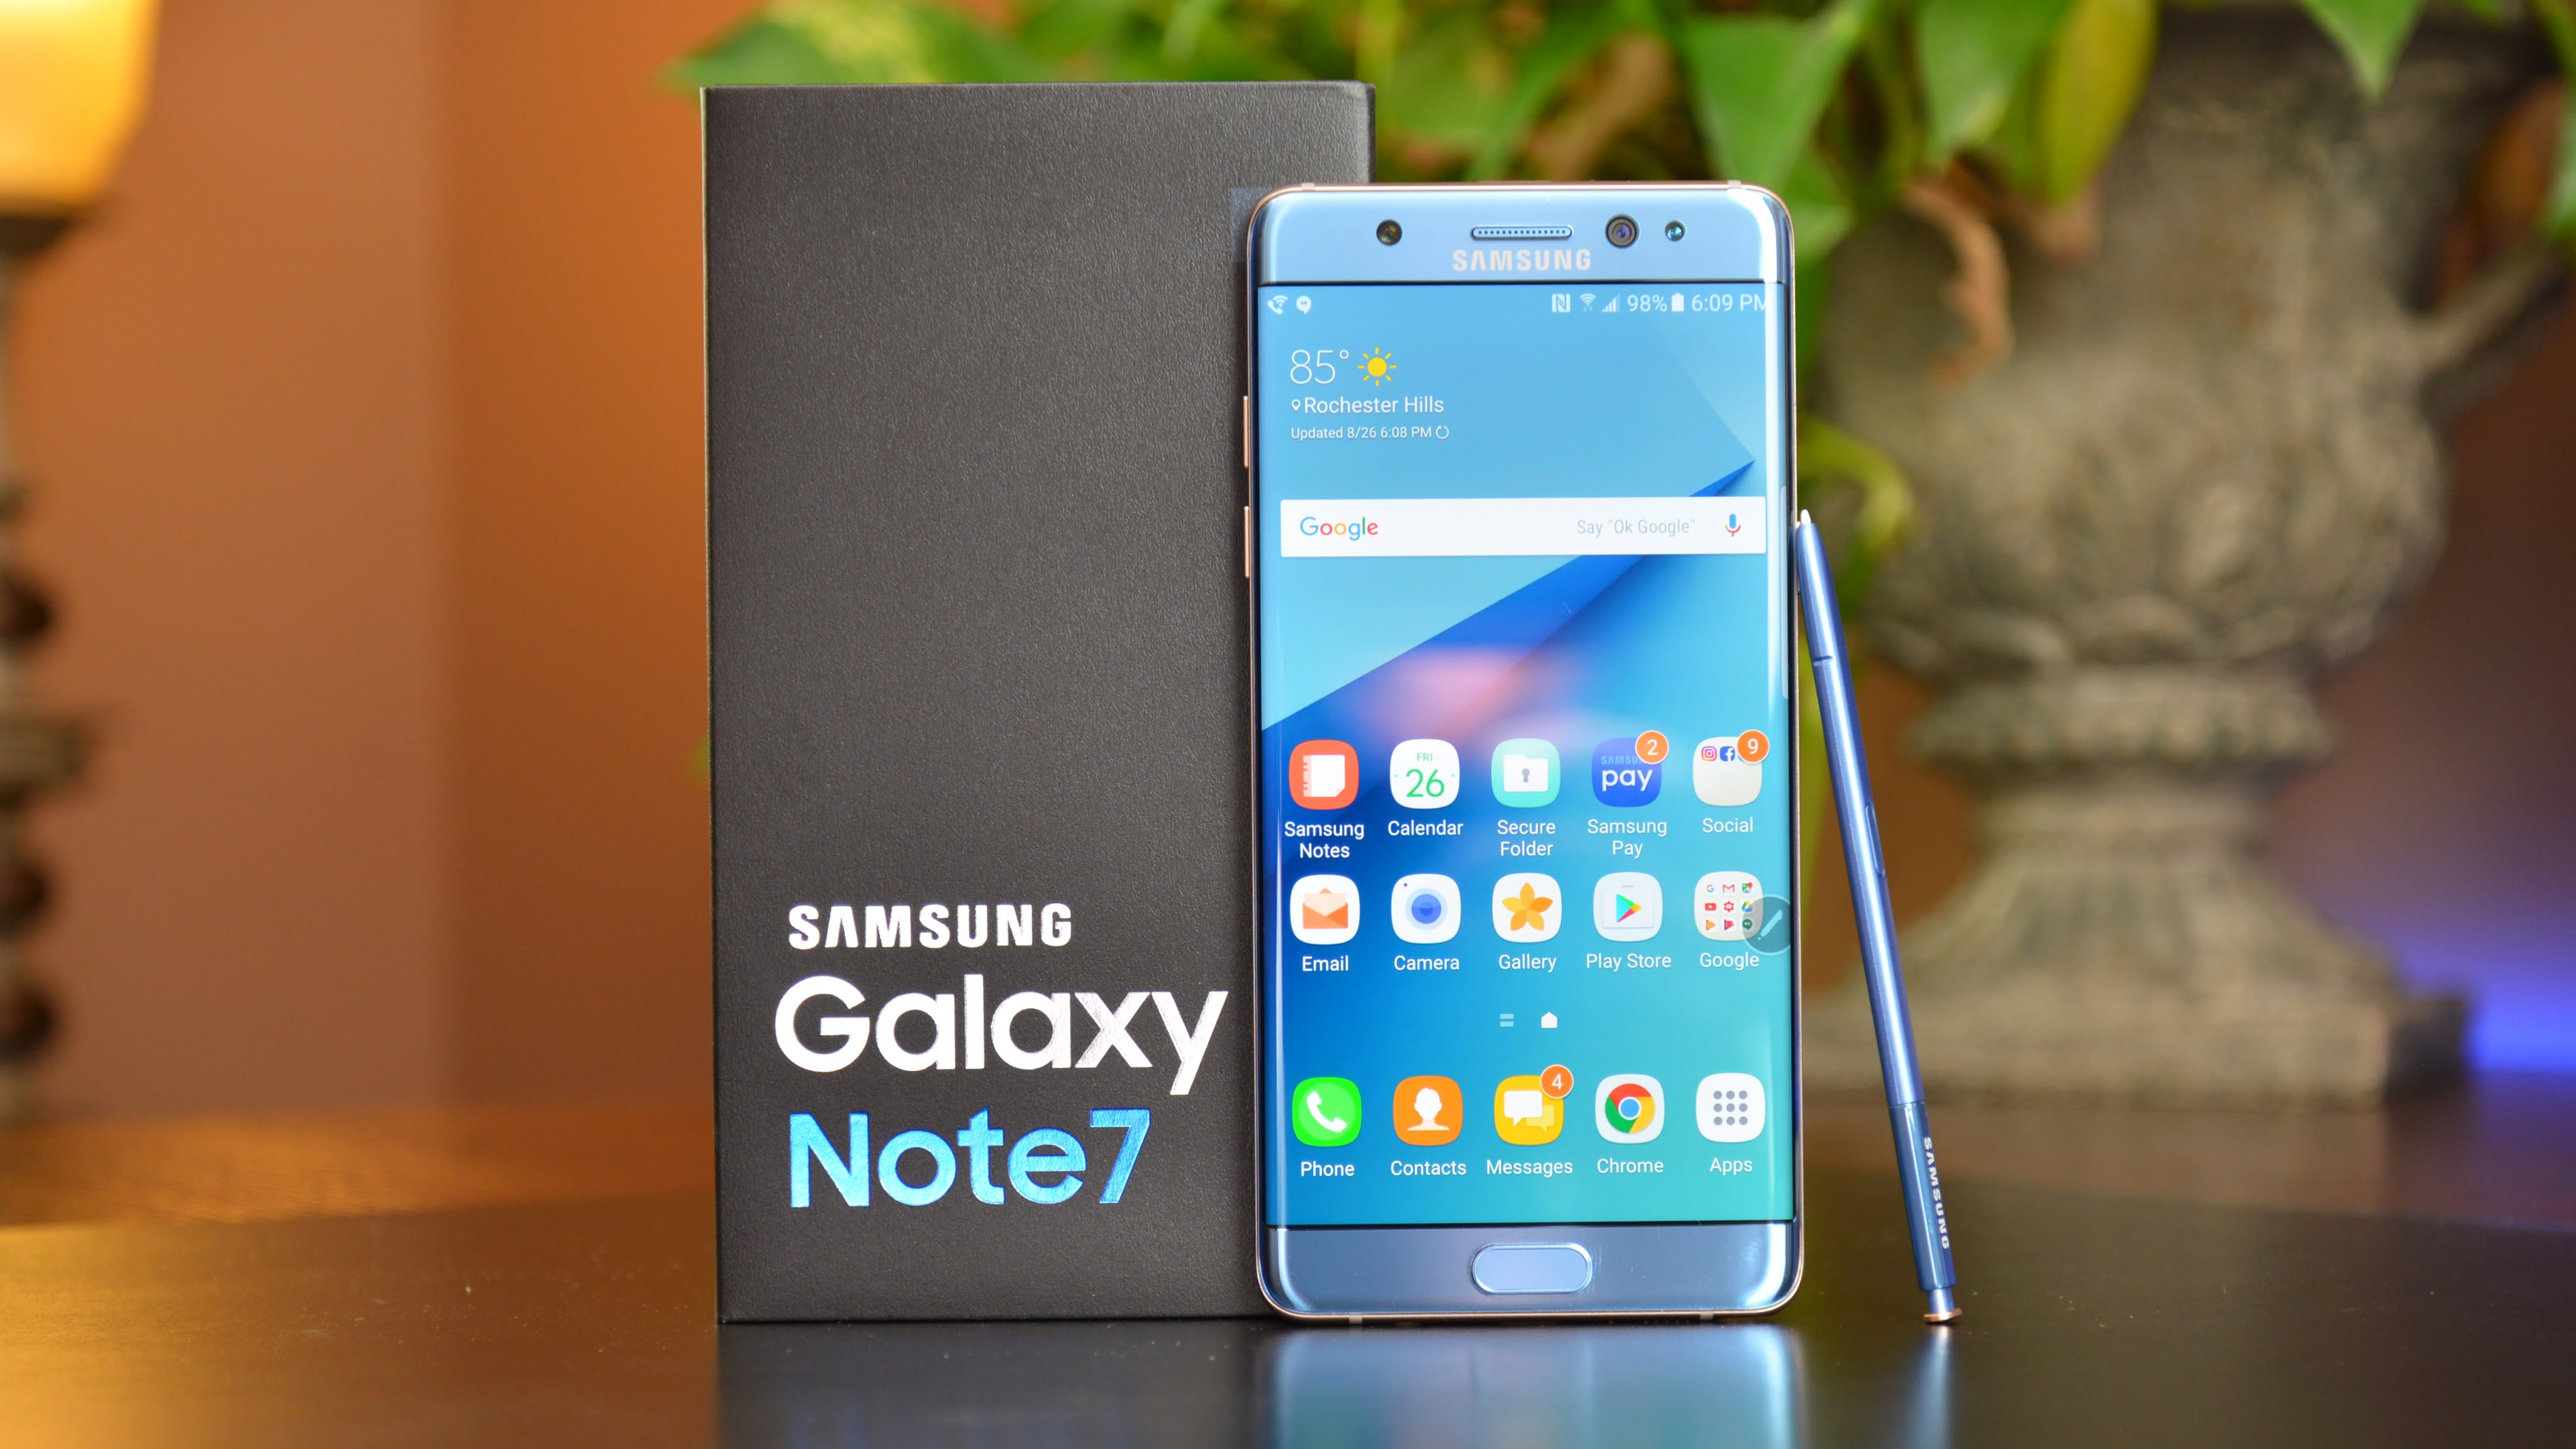 Samsung's reputation tumbles in the US following Galaxy Note 7 recall